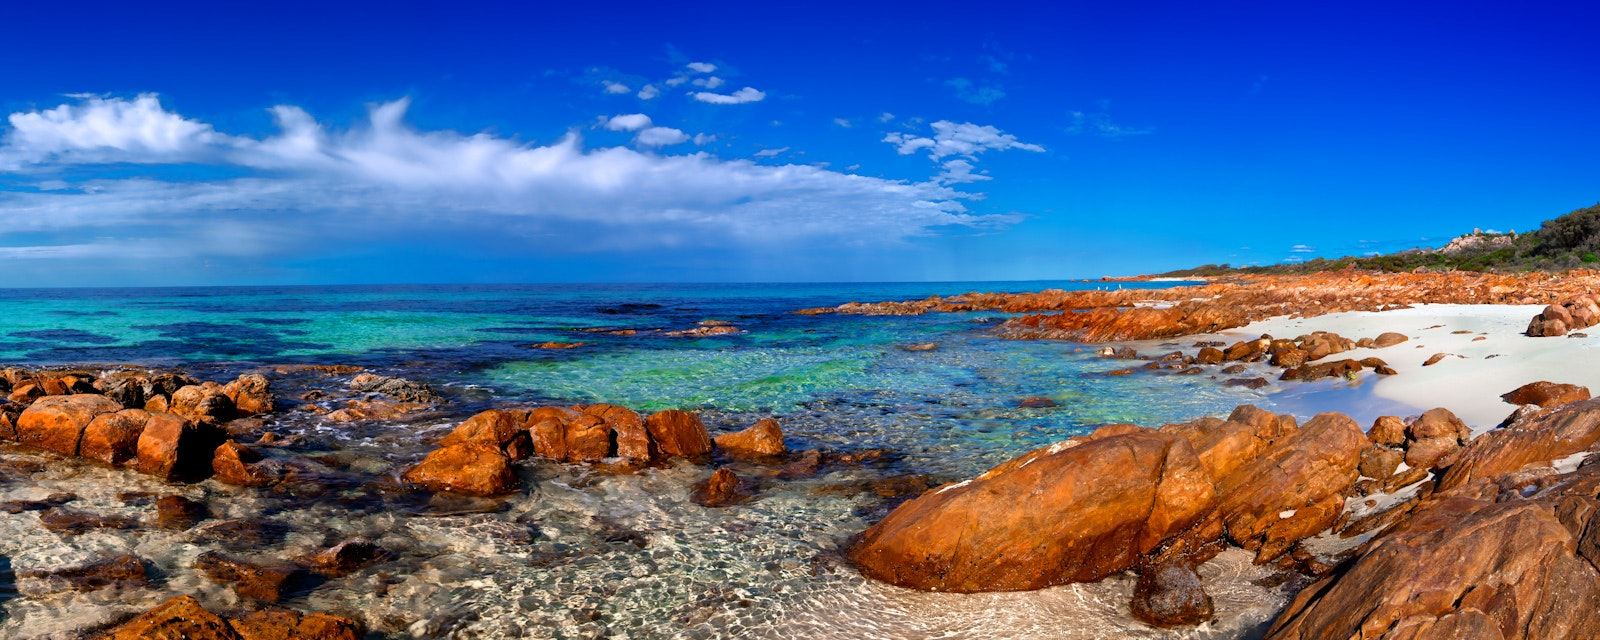 Near Meelup - South West - WA (5x2C2367) - Just one of the many beautiful rocky beaches between Eagle Bay and Meelup Beach near Dunsborough on the South...